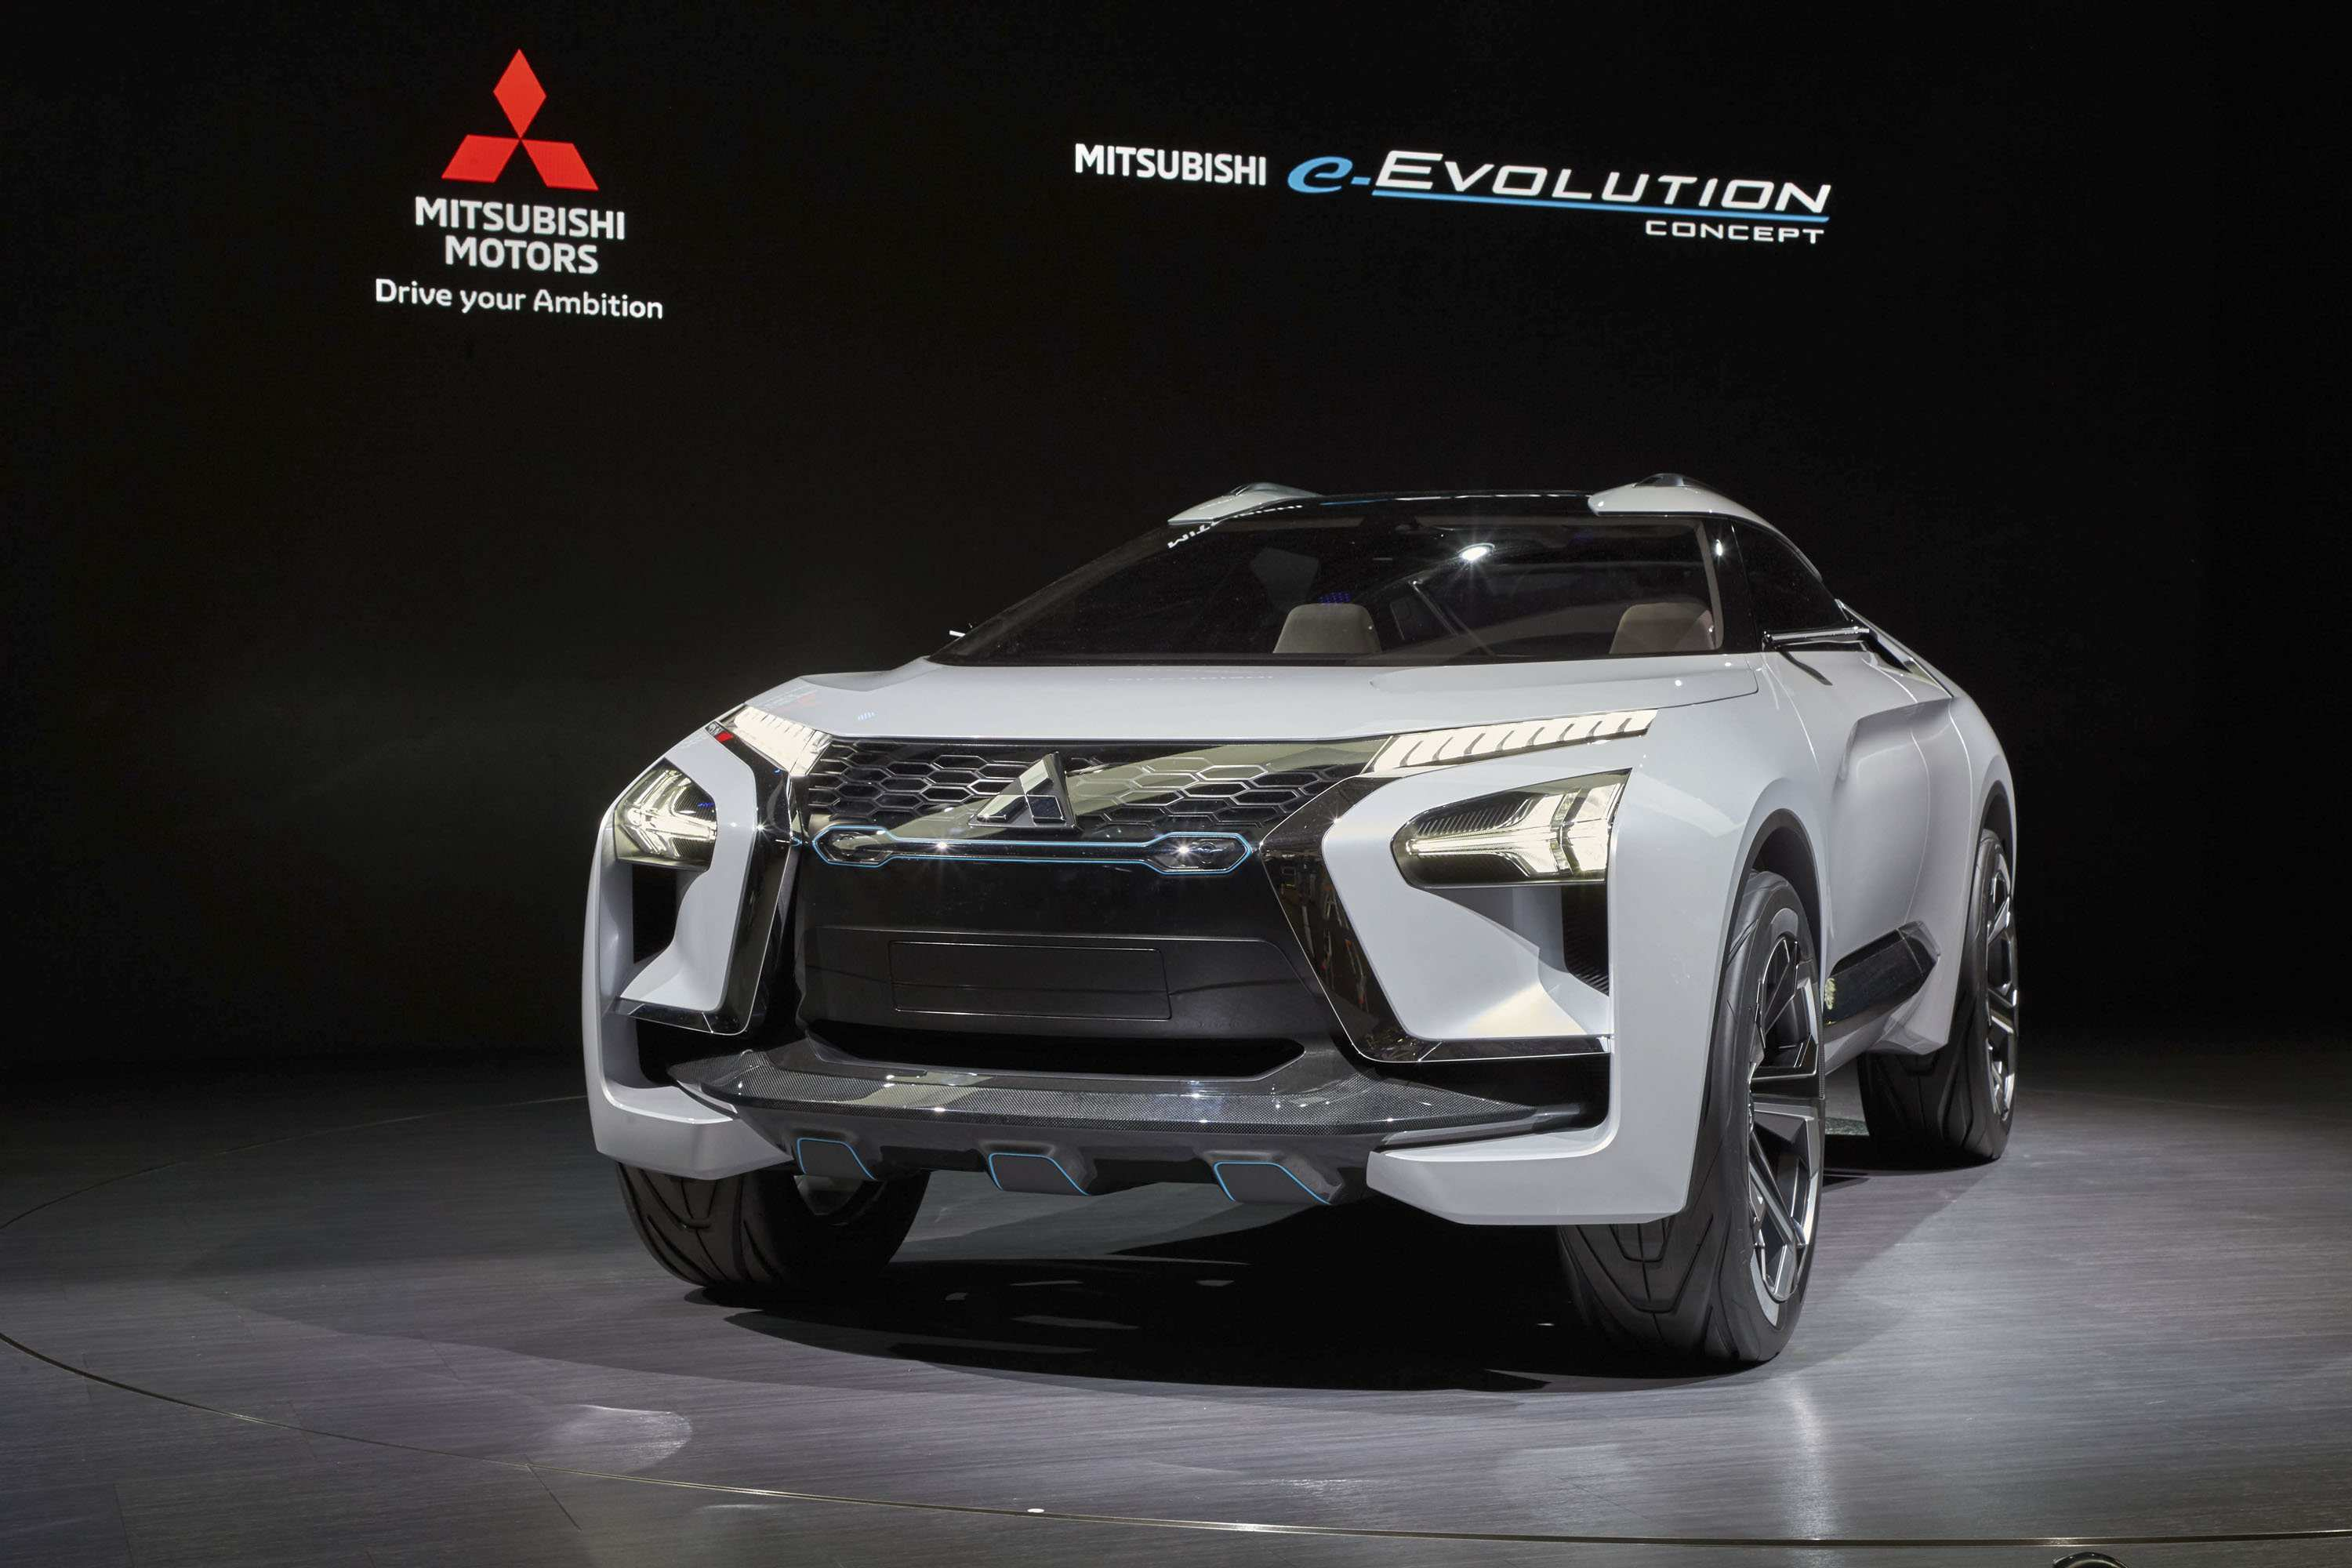 77 All New 2020 Mitsubishi Evo Price And Review